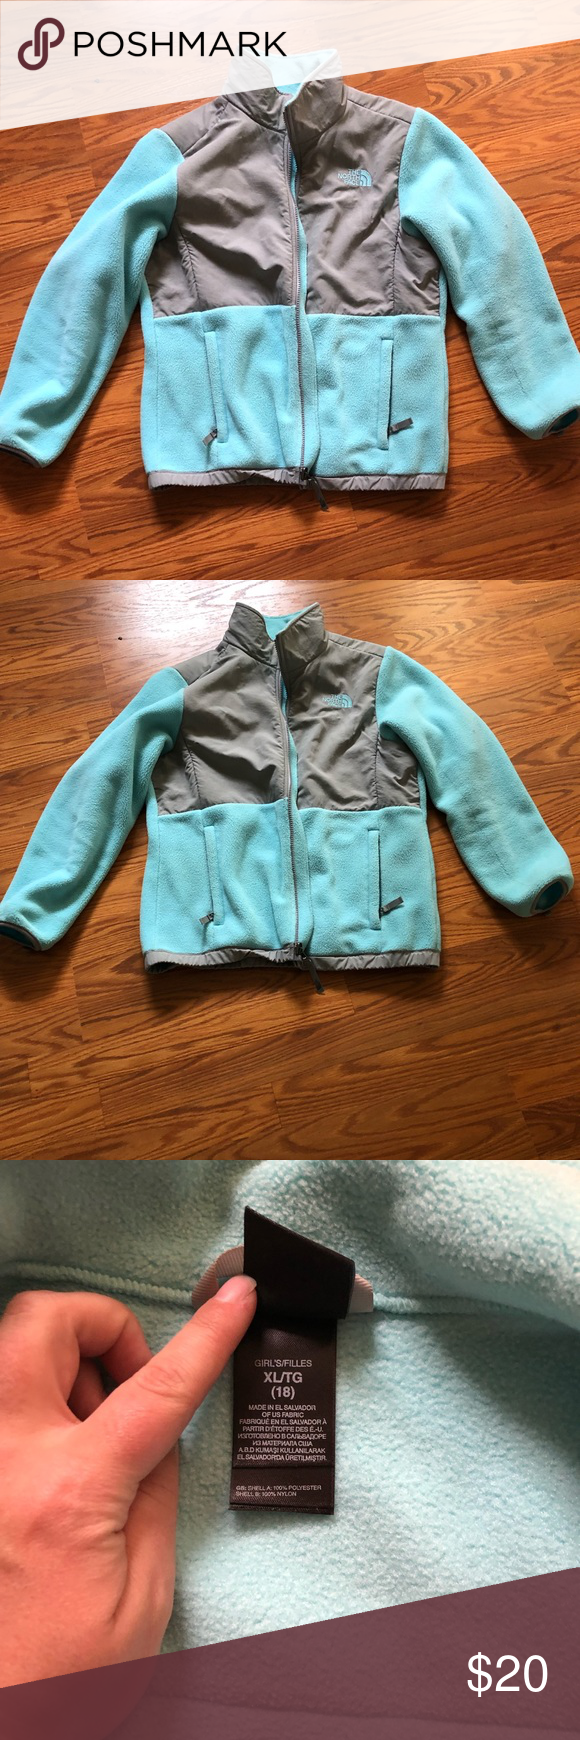 Baby Blue North Face Color Block Baby Blue And Grey Worn Only A Few Times My Last Name Is Written On The Name Tag North Face Jacket The North Face Baby [ 1740 x 580 Pixel ]